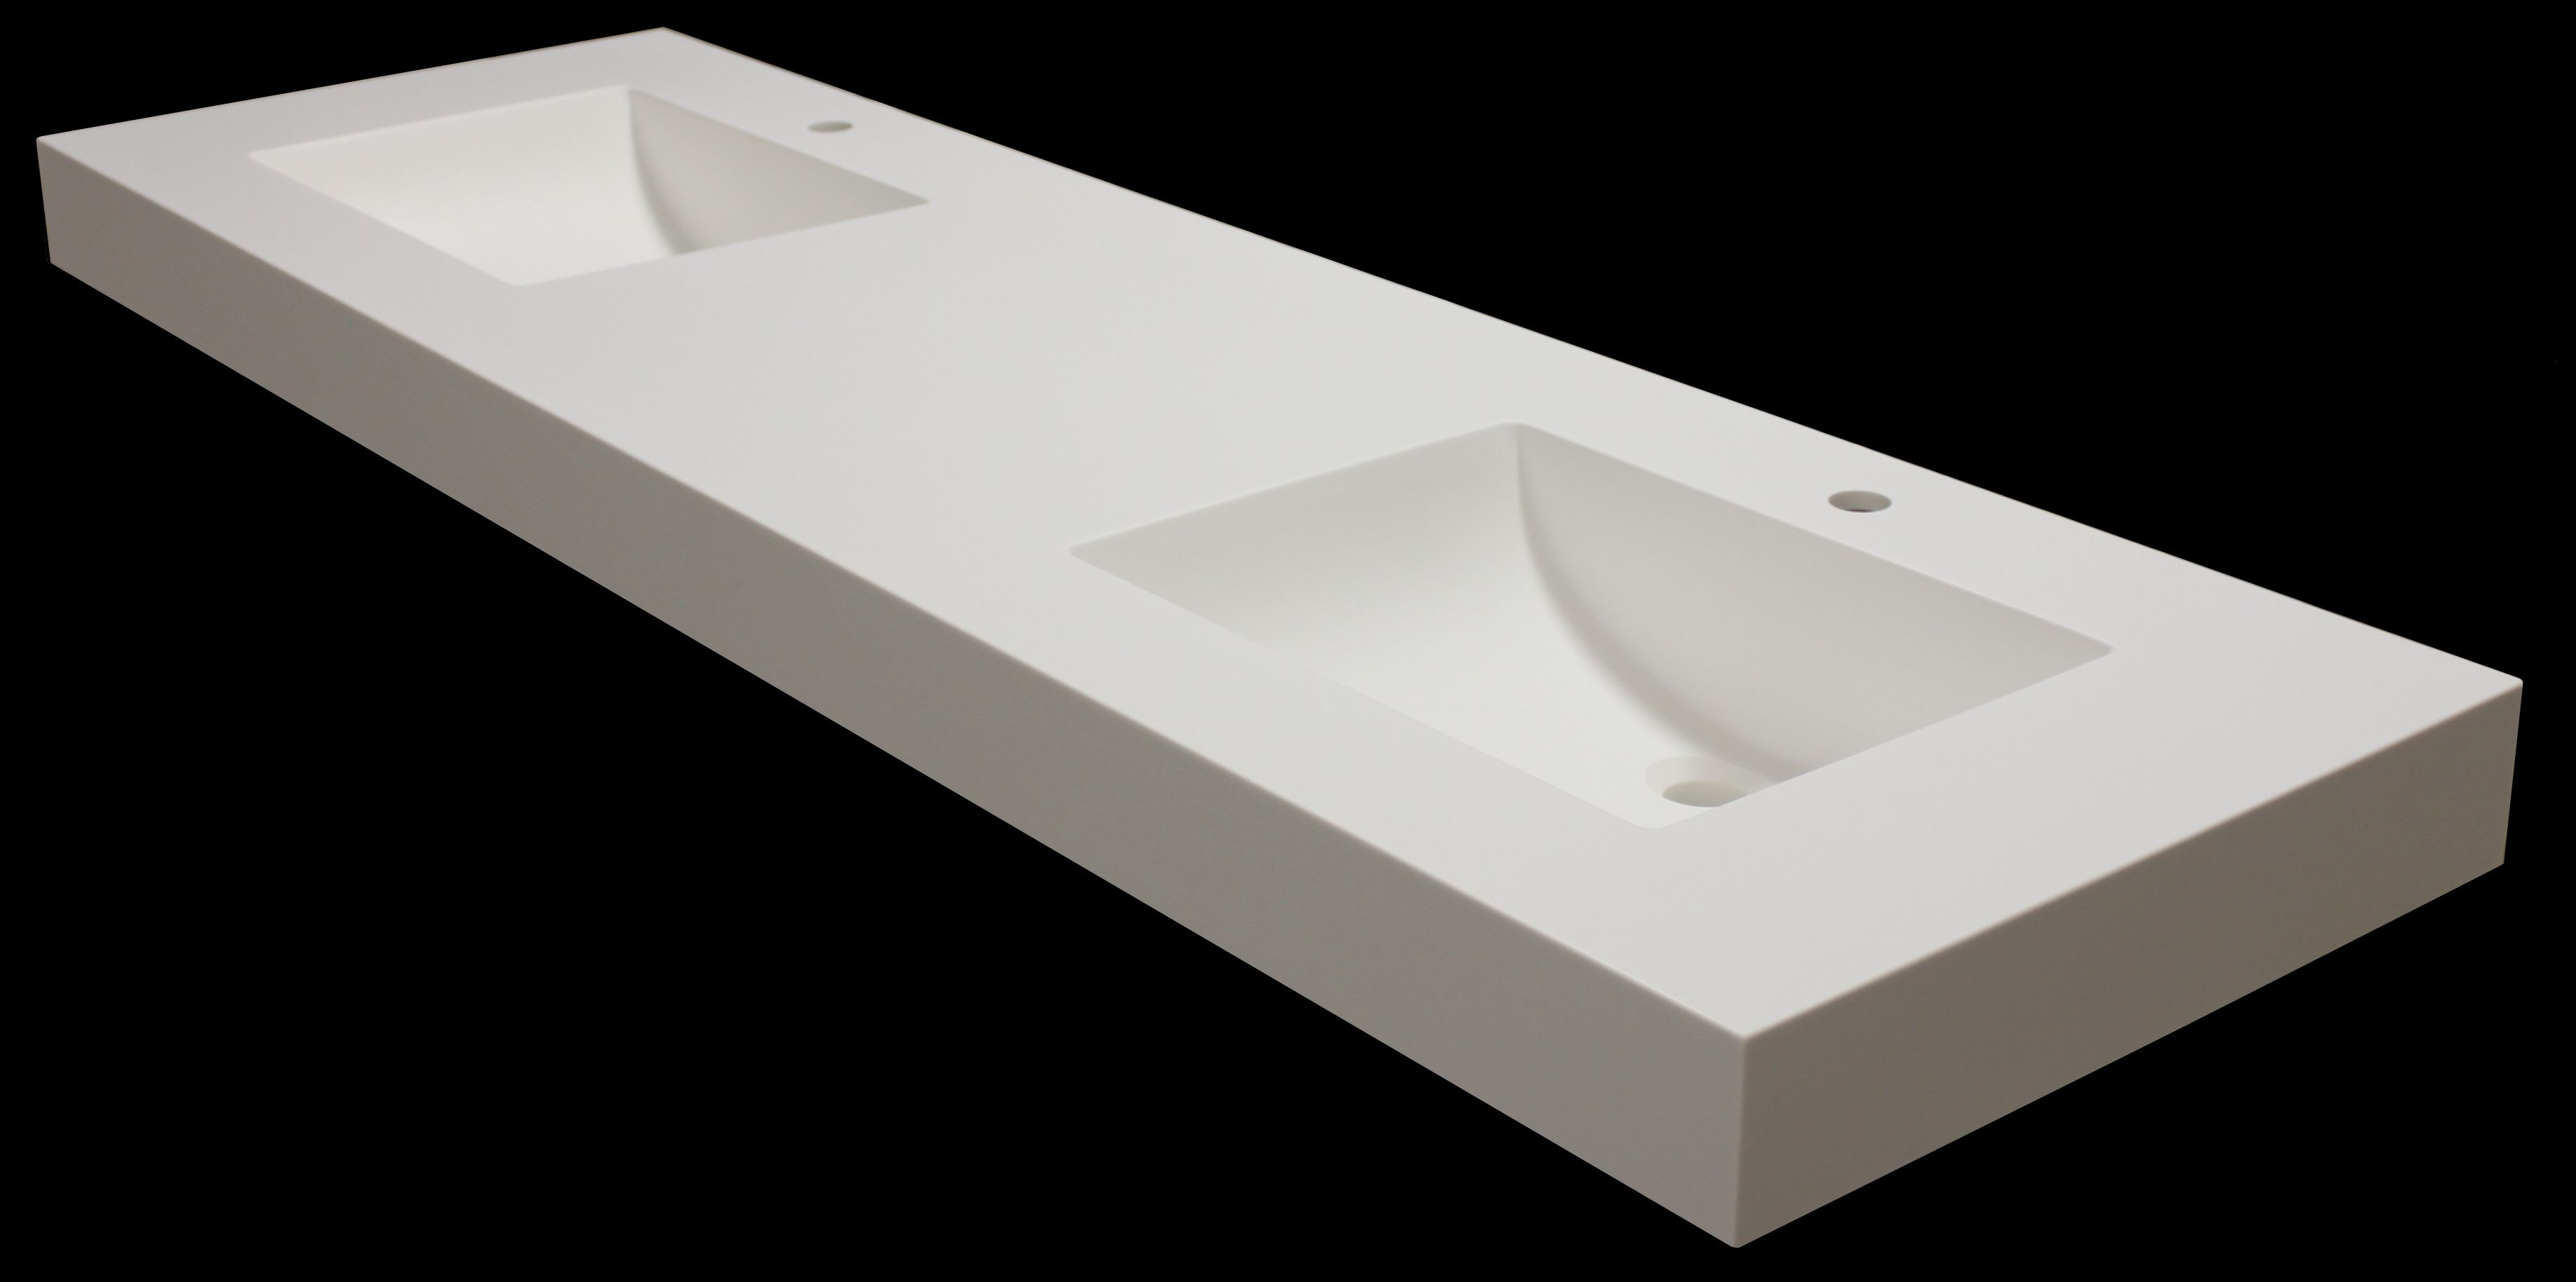 This Corian Glacier White Vanity Top Was Custom Made With Matching Therrmed Rectangular Sinks And 3 Thick Decorative Edges